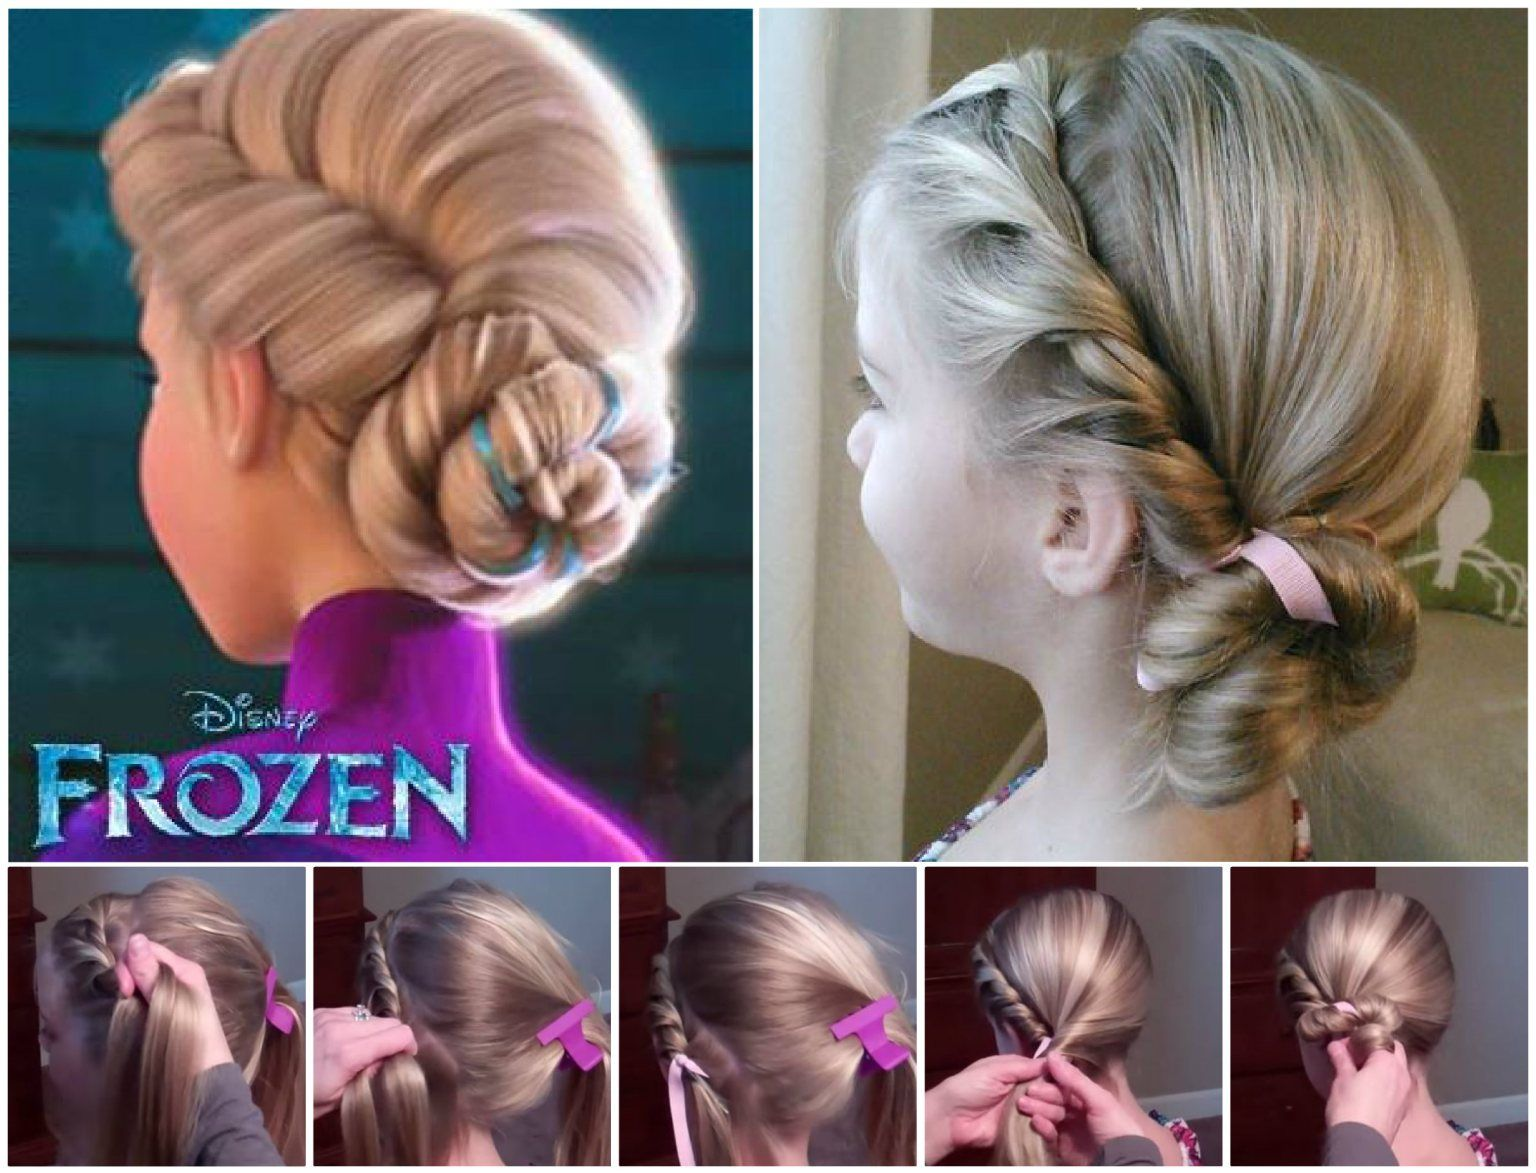 Hairstyles do it yourself a lot of hairstyles which can be done hairstyles do it yourself a lot of hairstyles which can be done at home without the help of a stylist solutioingenieria Image collections